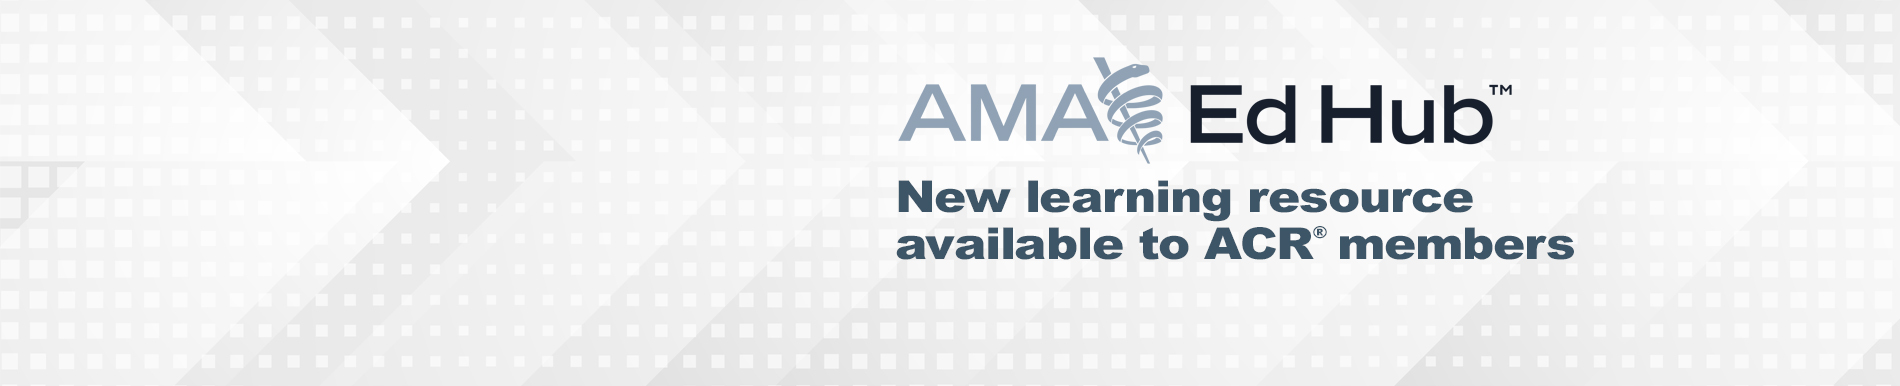 American Medical Association Educational Hub Featuring ACR Products